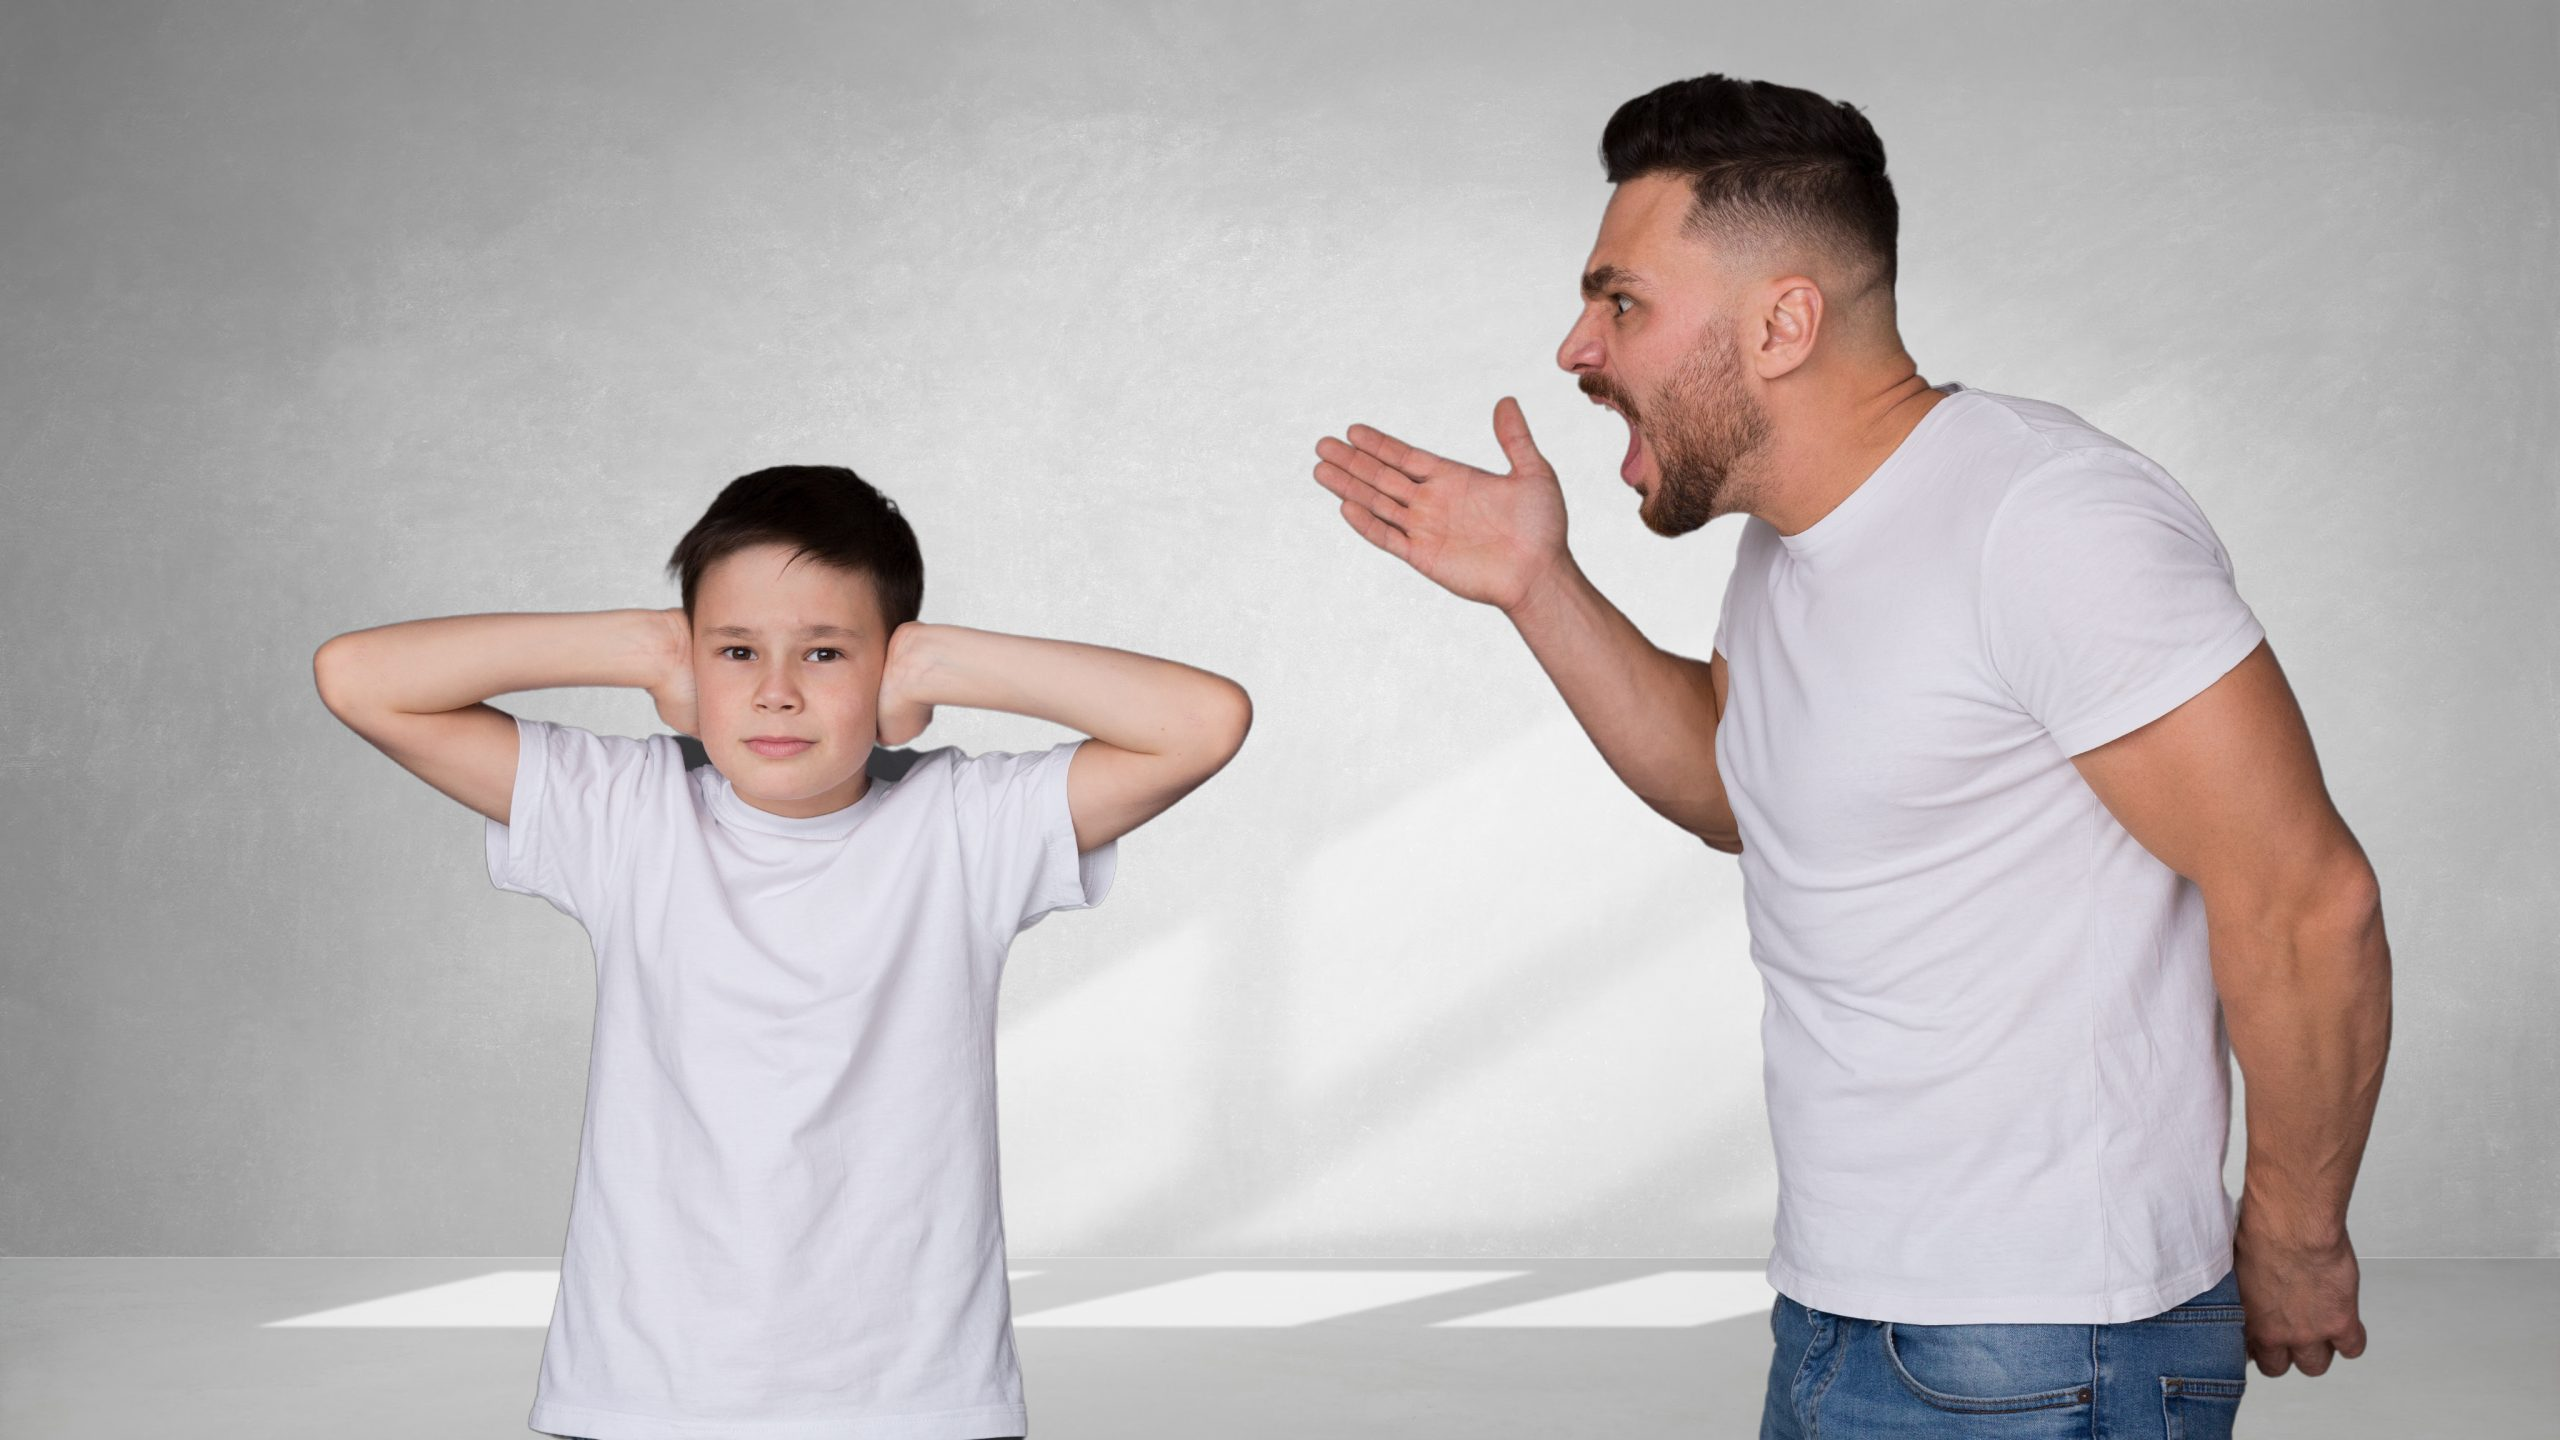 Father yelling at son, son covers his ears.